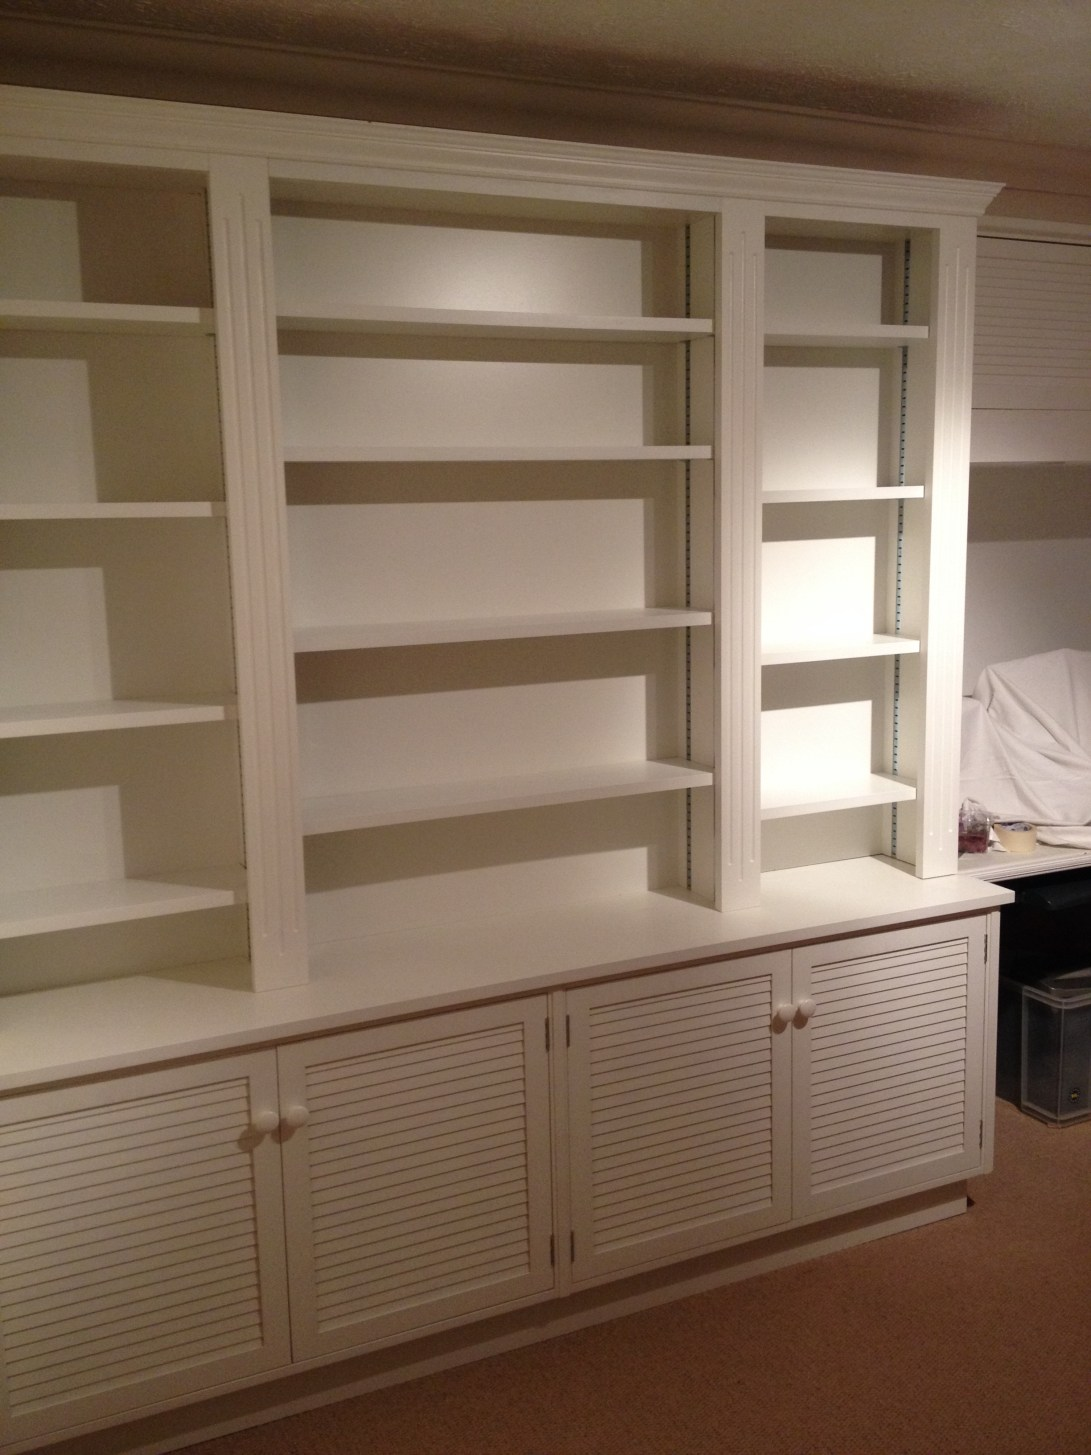 Study dresser unit finished in Farrow and Ball Paint